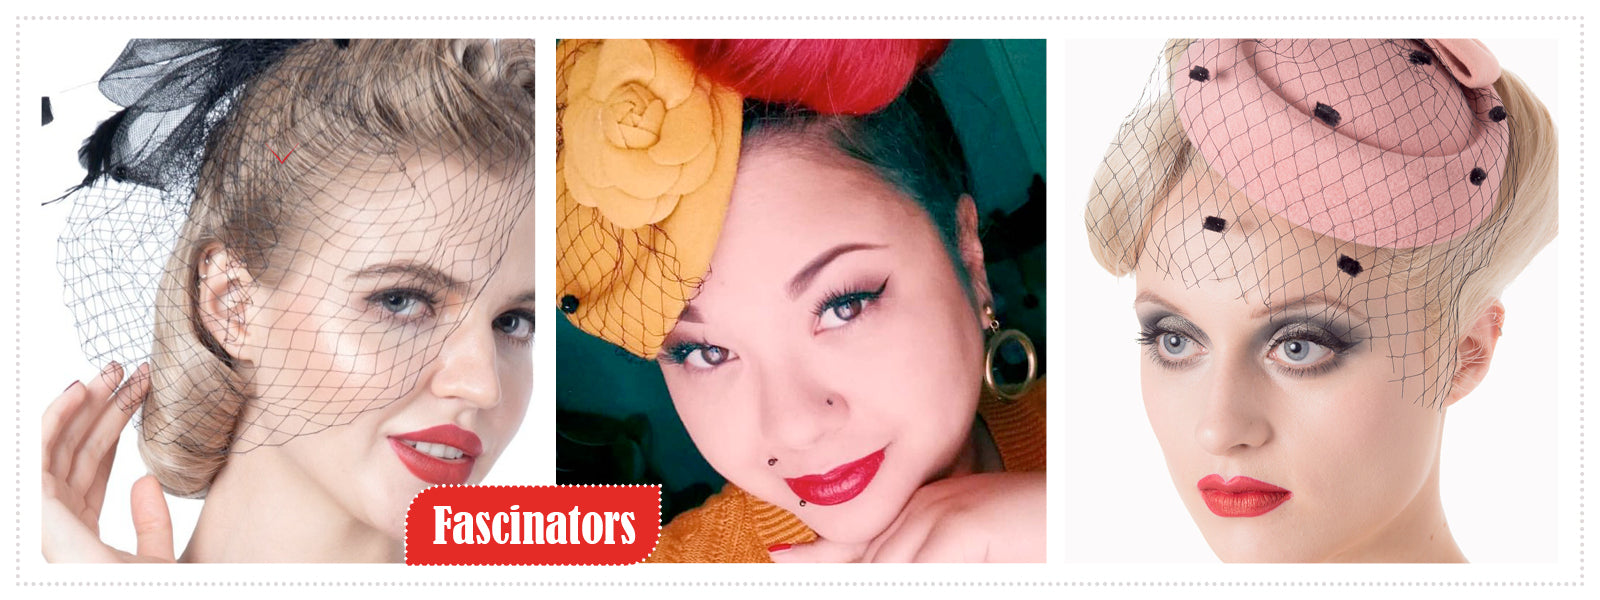 Fascinators, Pillbox Hats & Hairclips